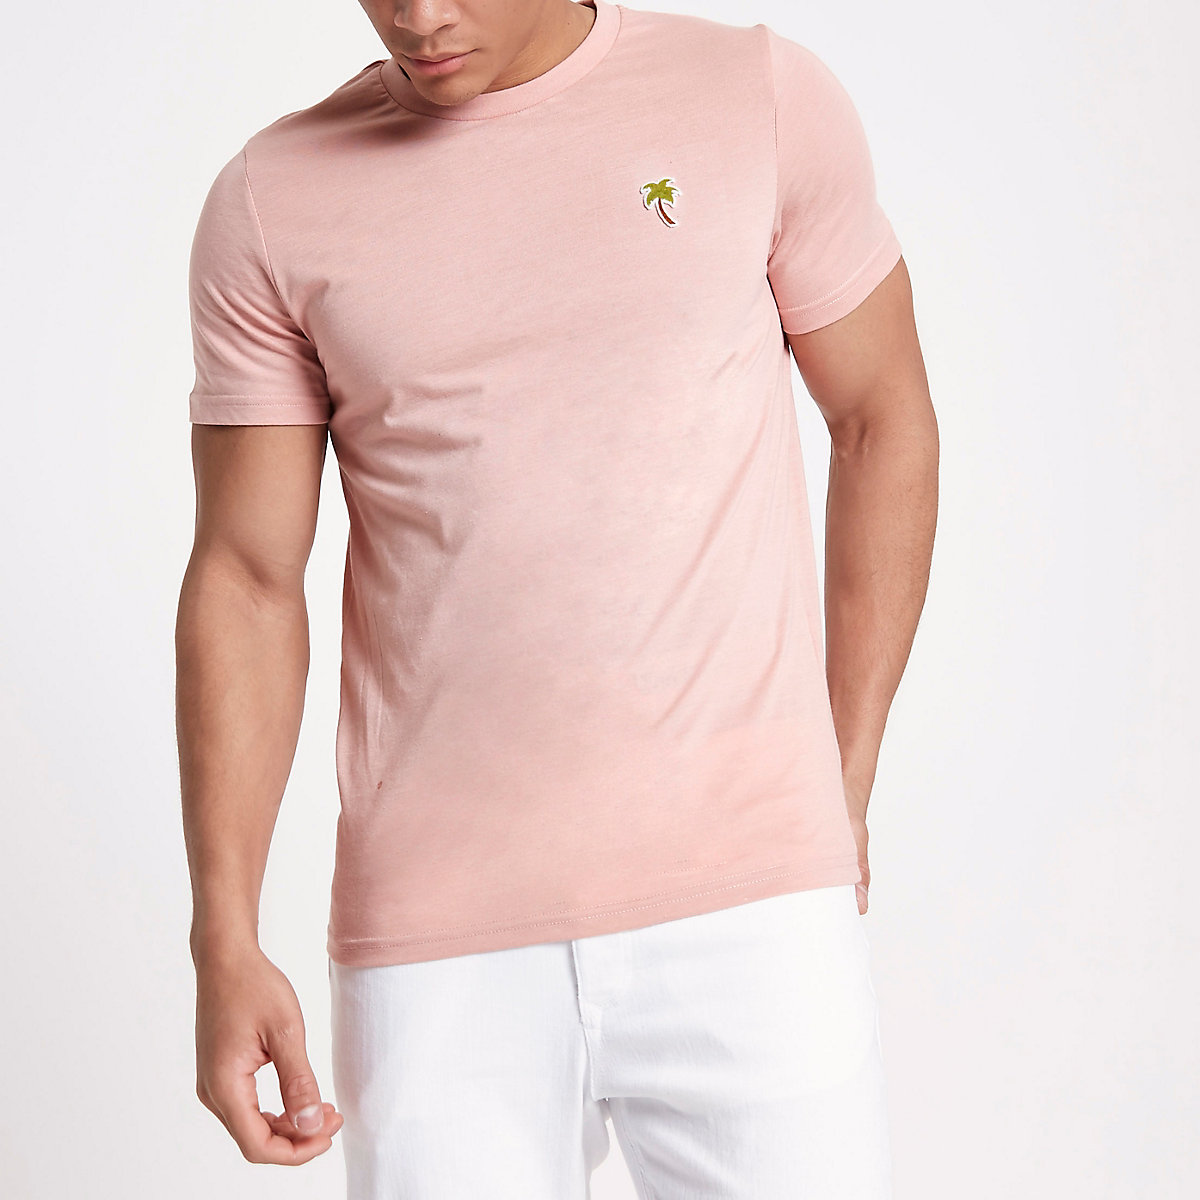 Jack & Jones pink palm embroidered T-shirt